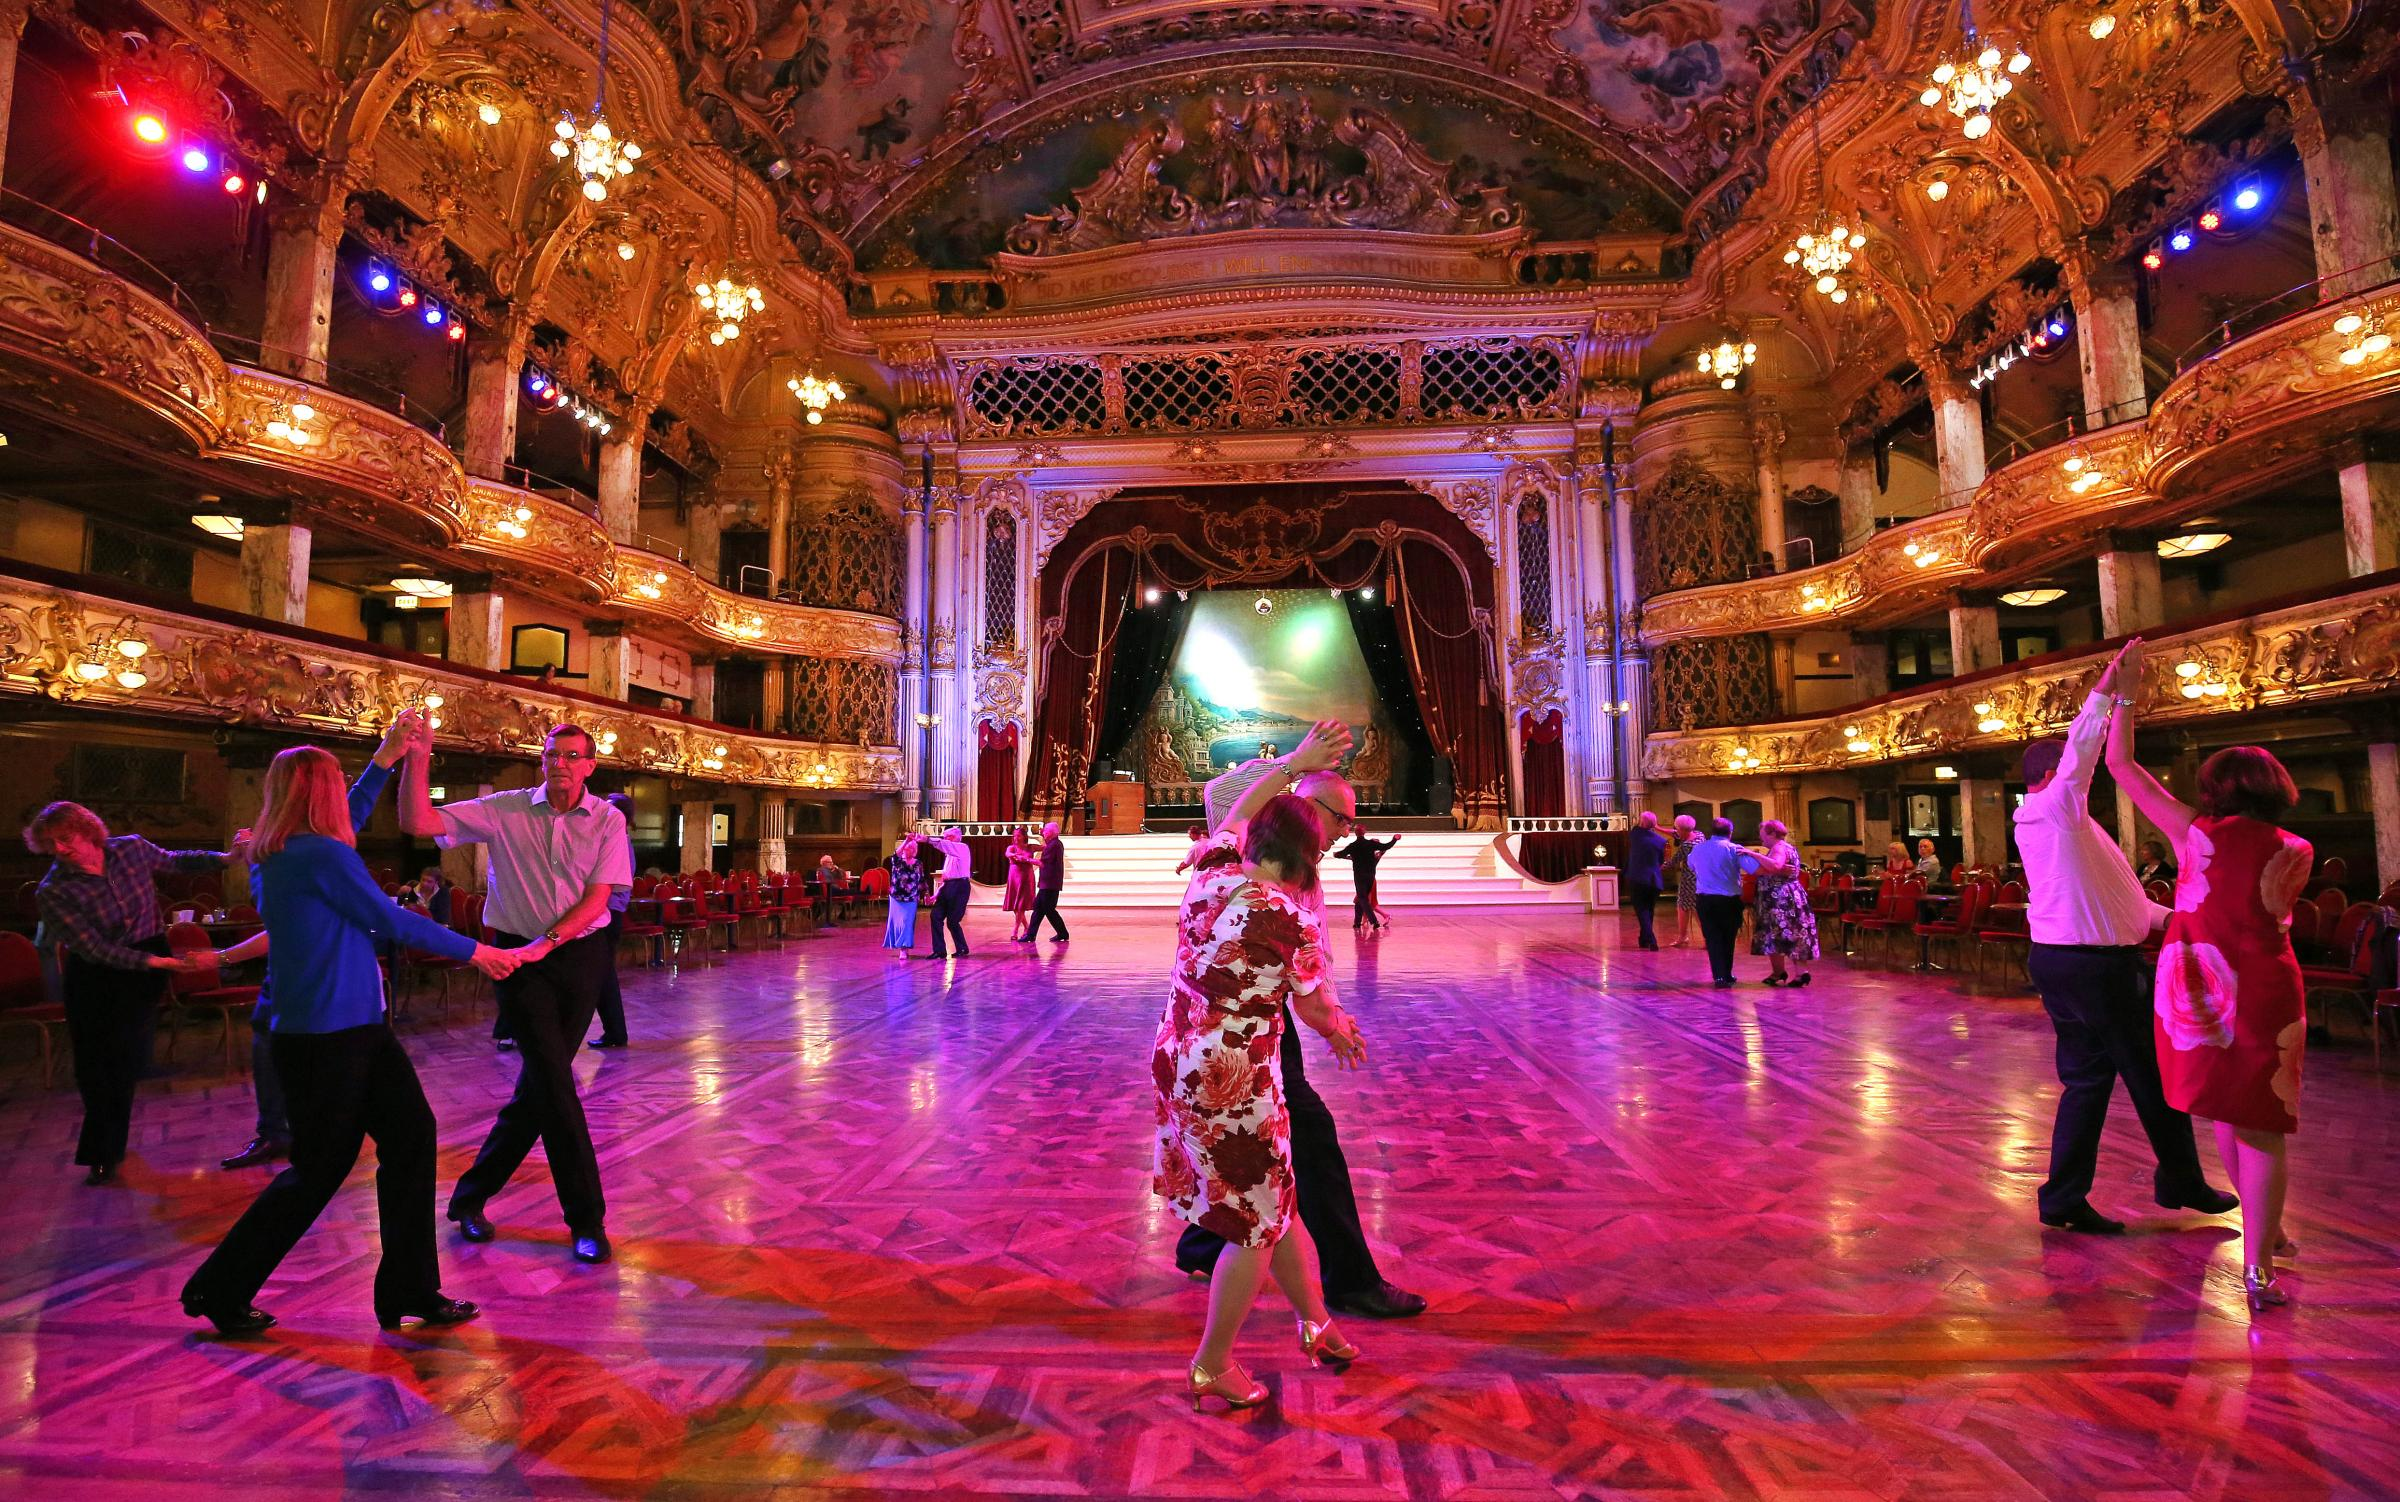 Put on your glad rags and Dance for Victory at The Blackpool Tower